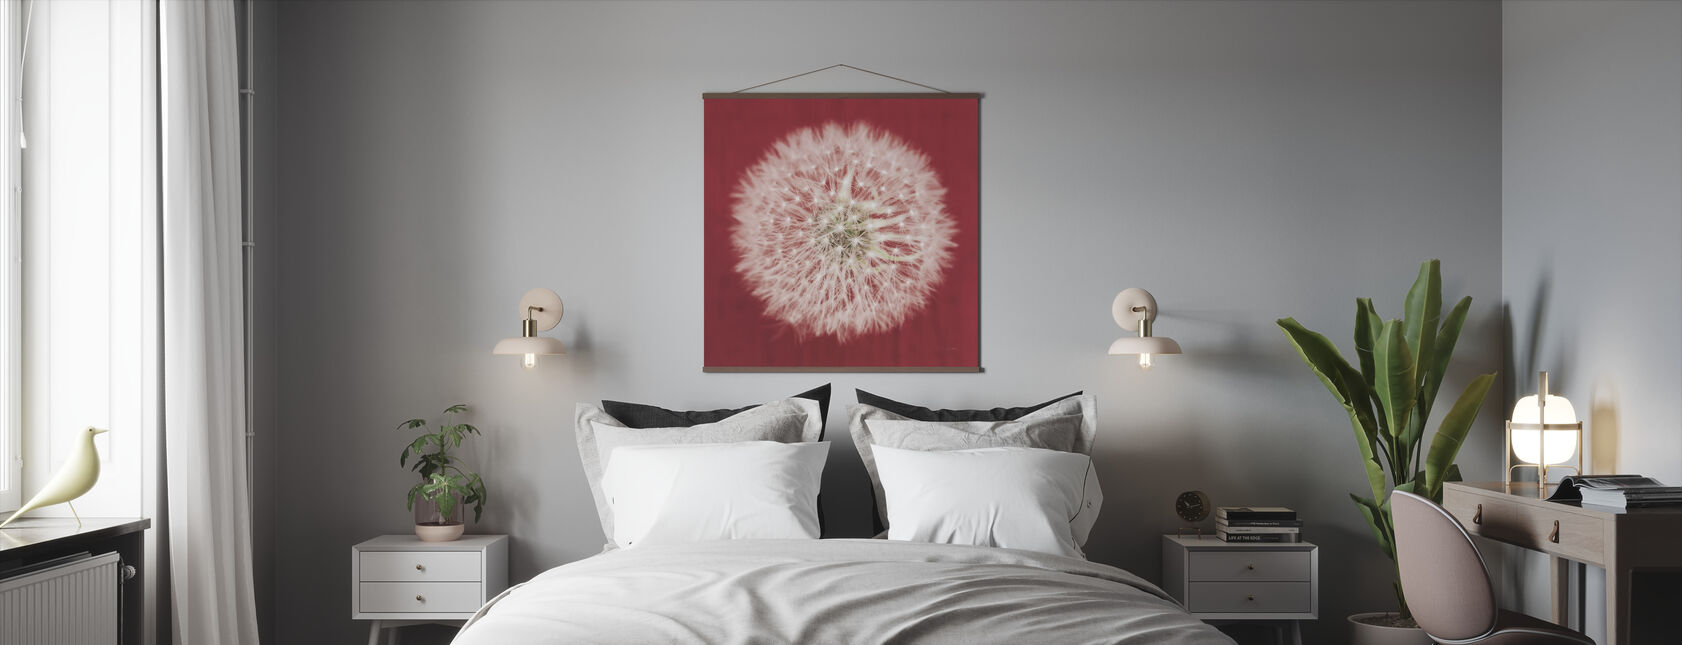 Dandelion on Red - Poster - Bedroom